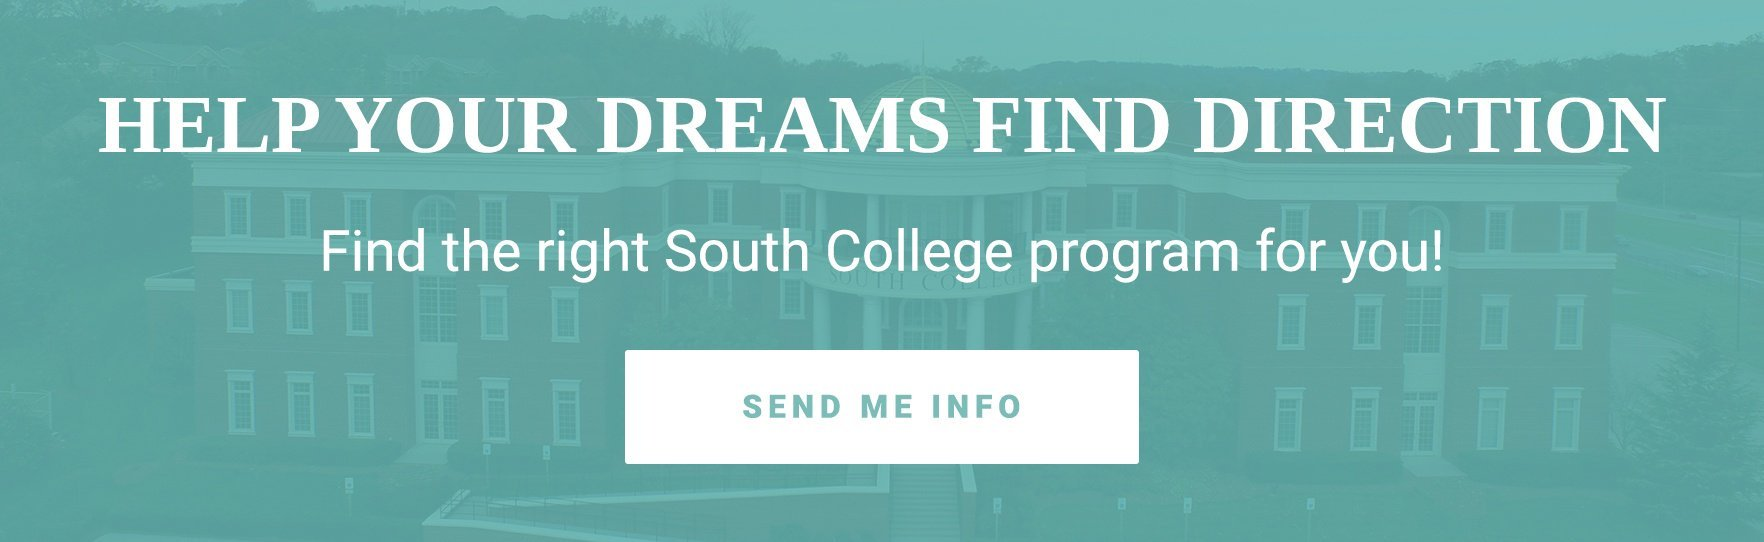 Help Your Dreams Find Direction. Find the right South College program for you. Send Me Info.